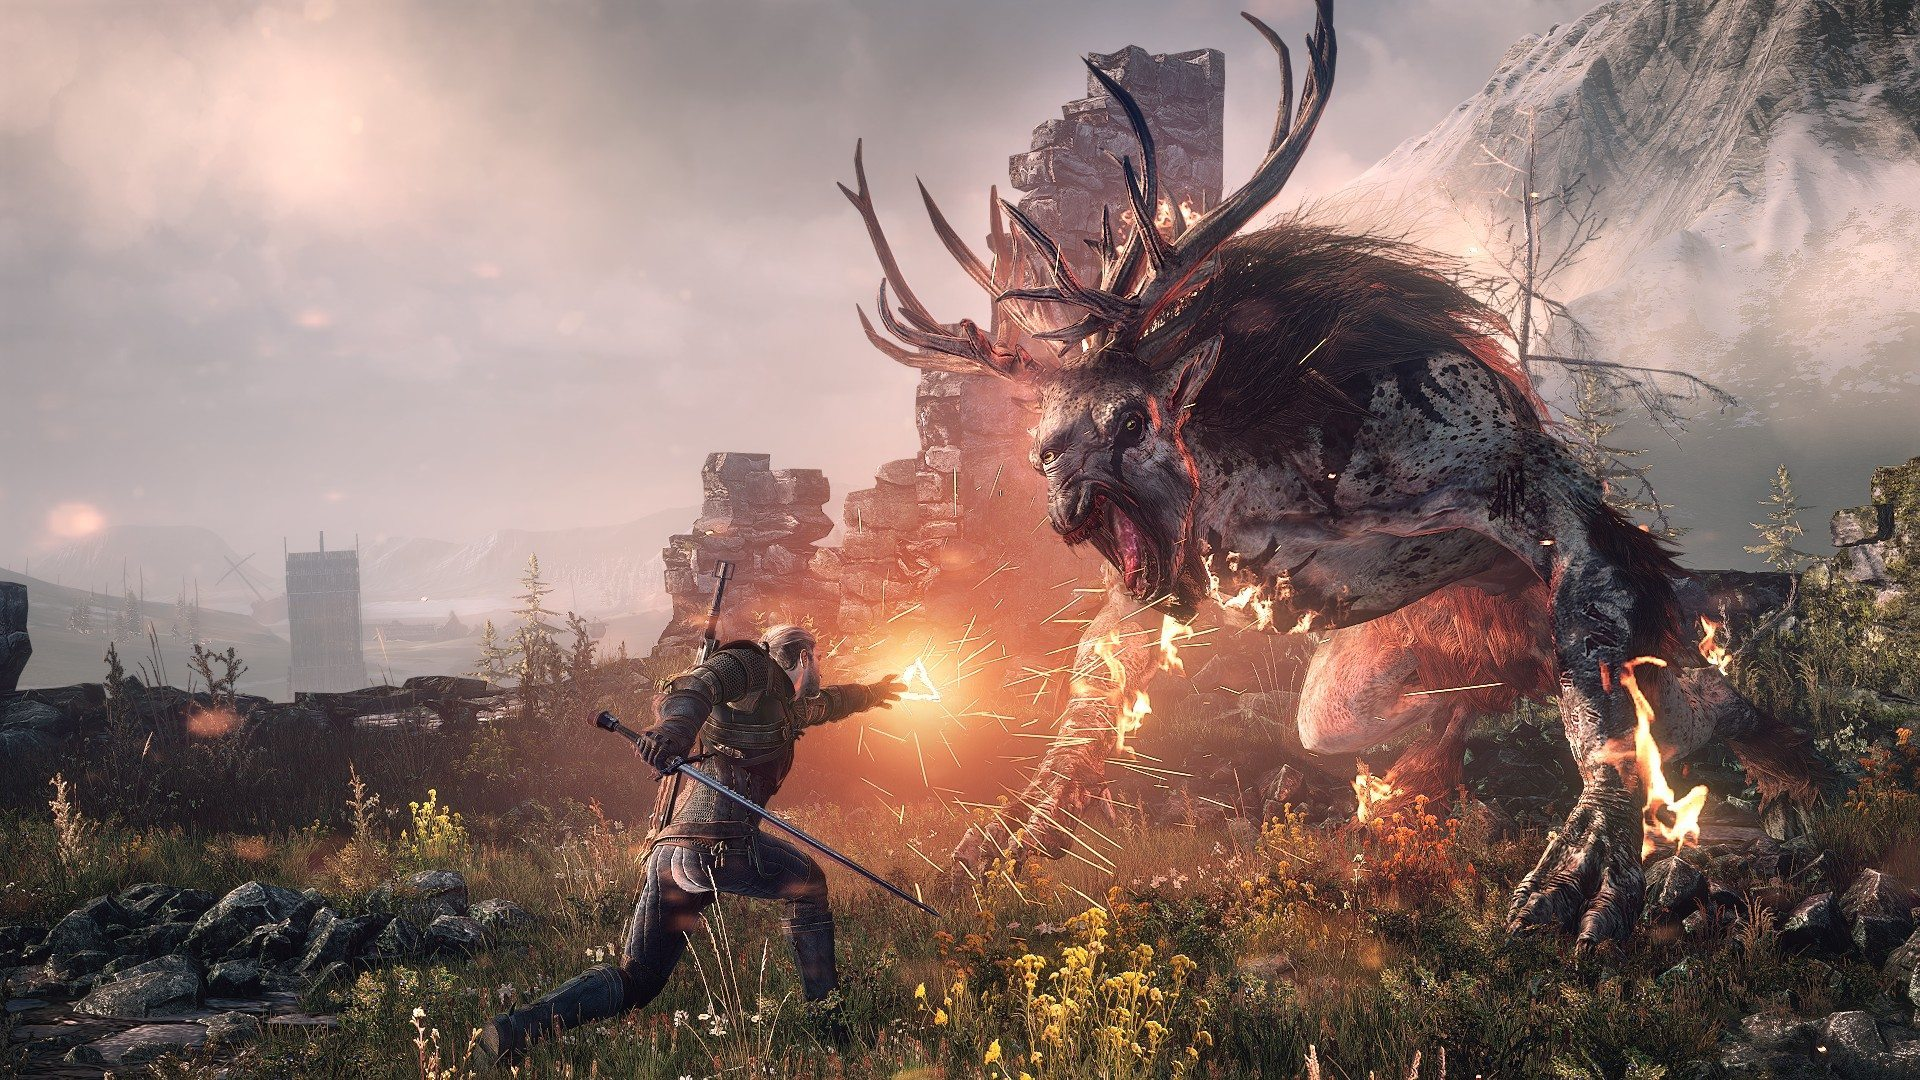 Best single player PC games: The Witcher 3: Wild Hunt